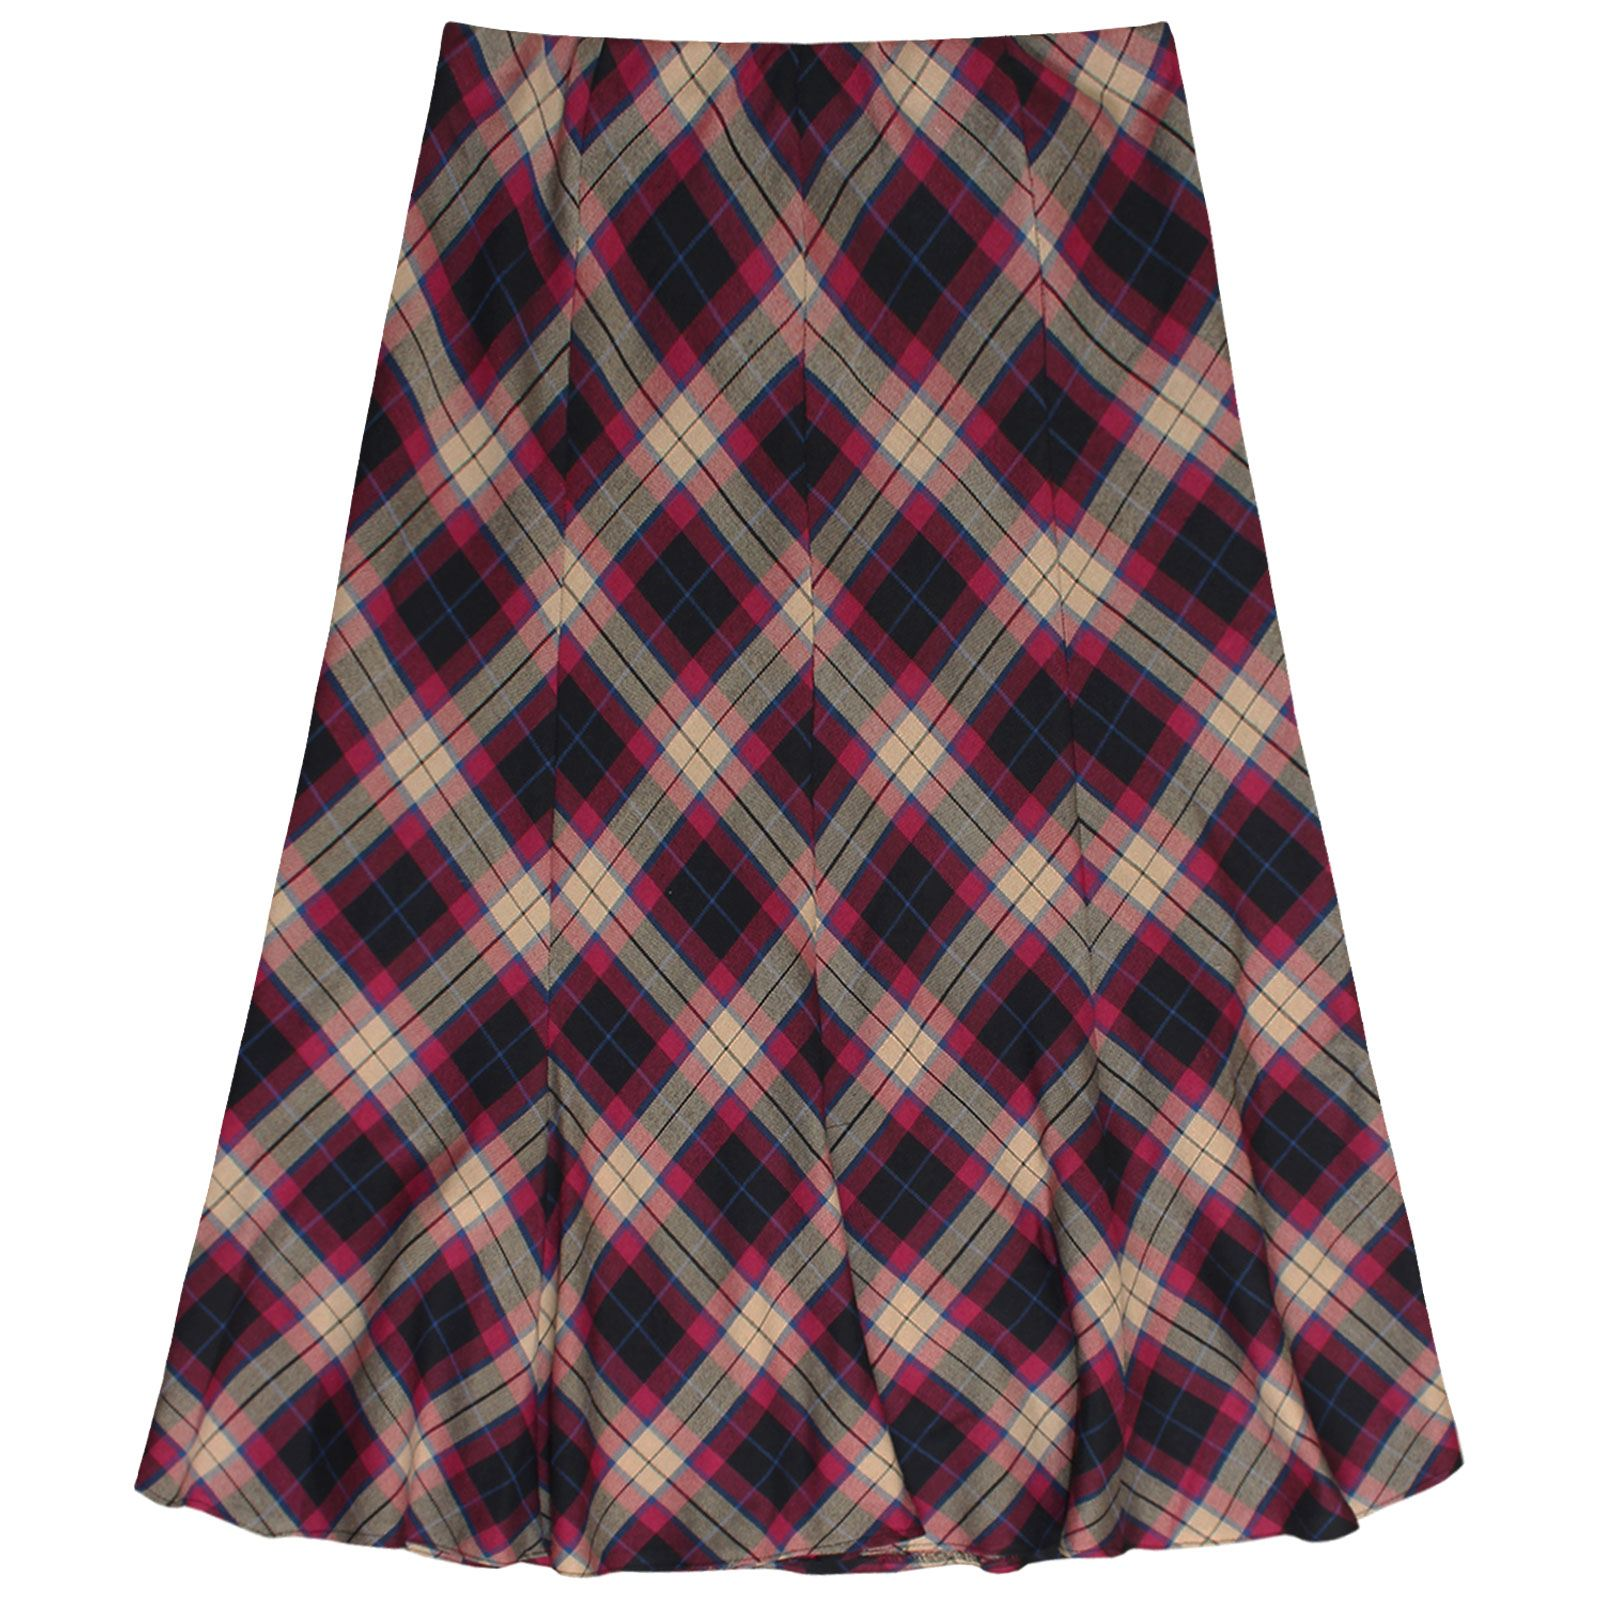 Choose from a range of over tartans to create a sophisticated long fluted skirt tailored to your measurements. Wear it with a solid colour top or one of our matching round or vee neck tailored tartan tops for the perfect outfit for a wedding or evening wear. Select from over tartans woven in jwl-network.gar: Anna White.